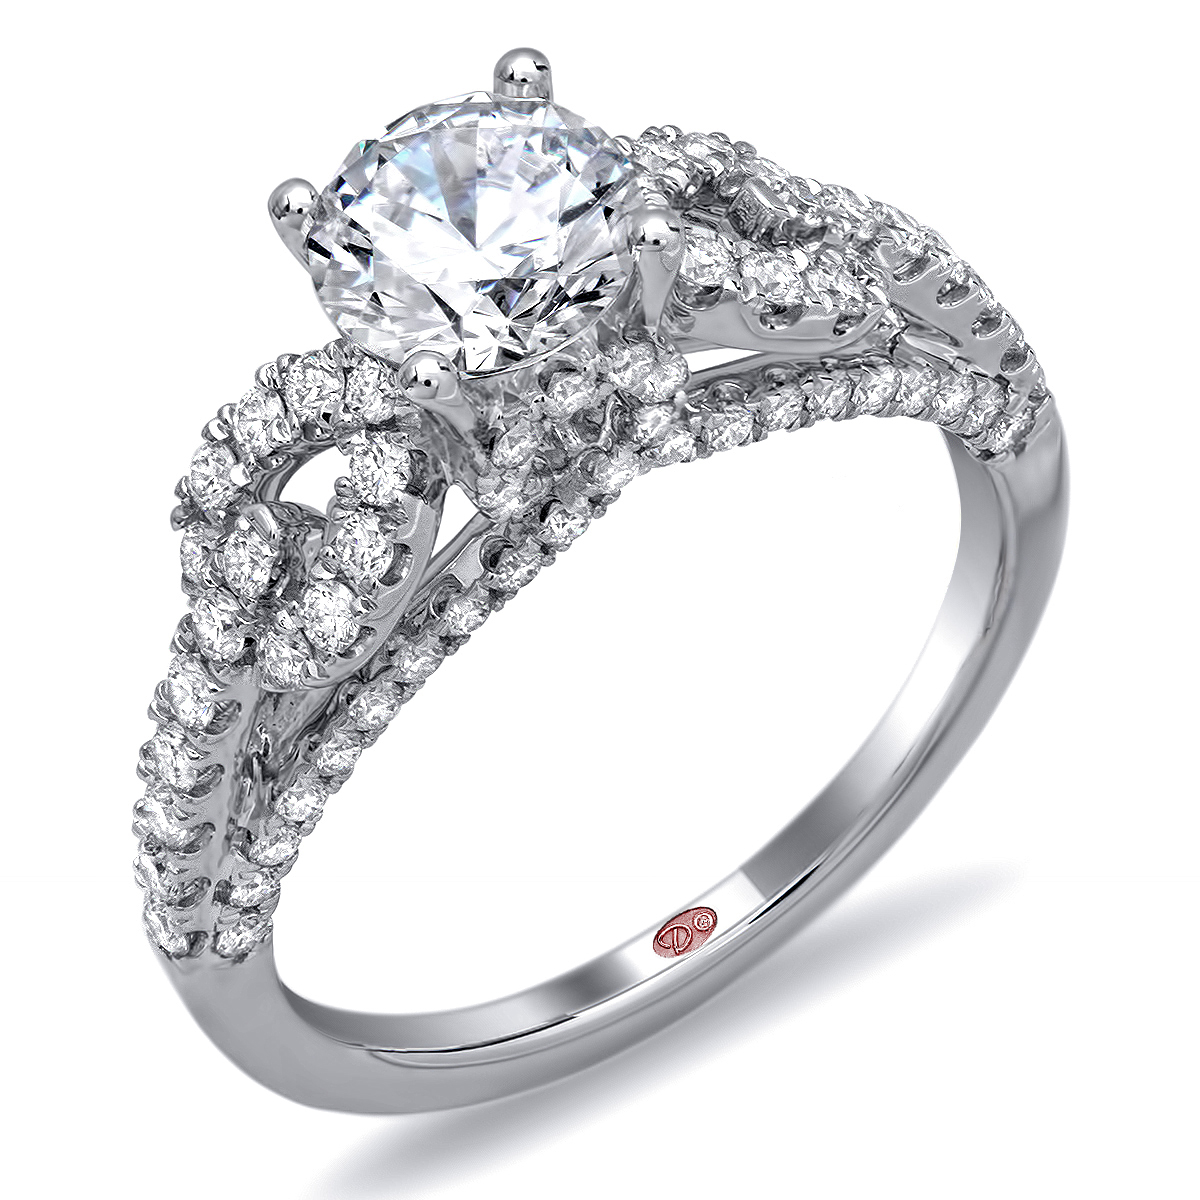 rings Demarco Bridal Jewelry Official Blog Page 3